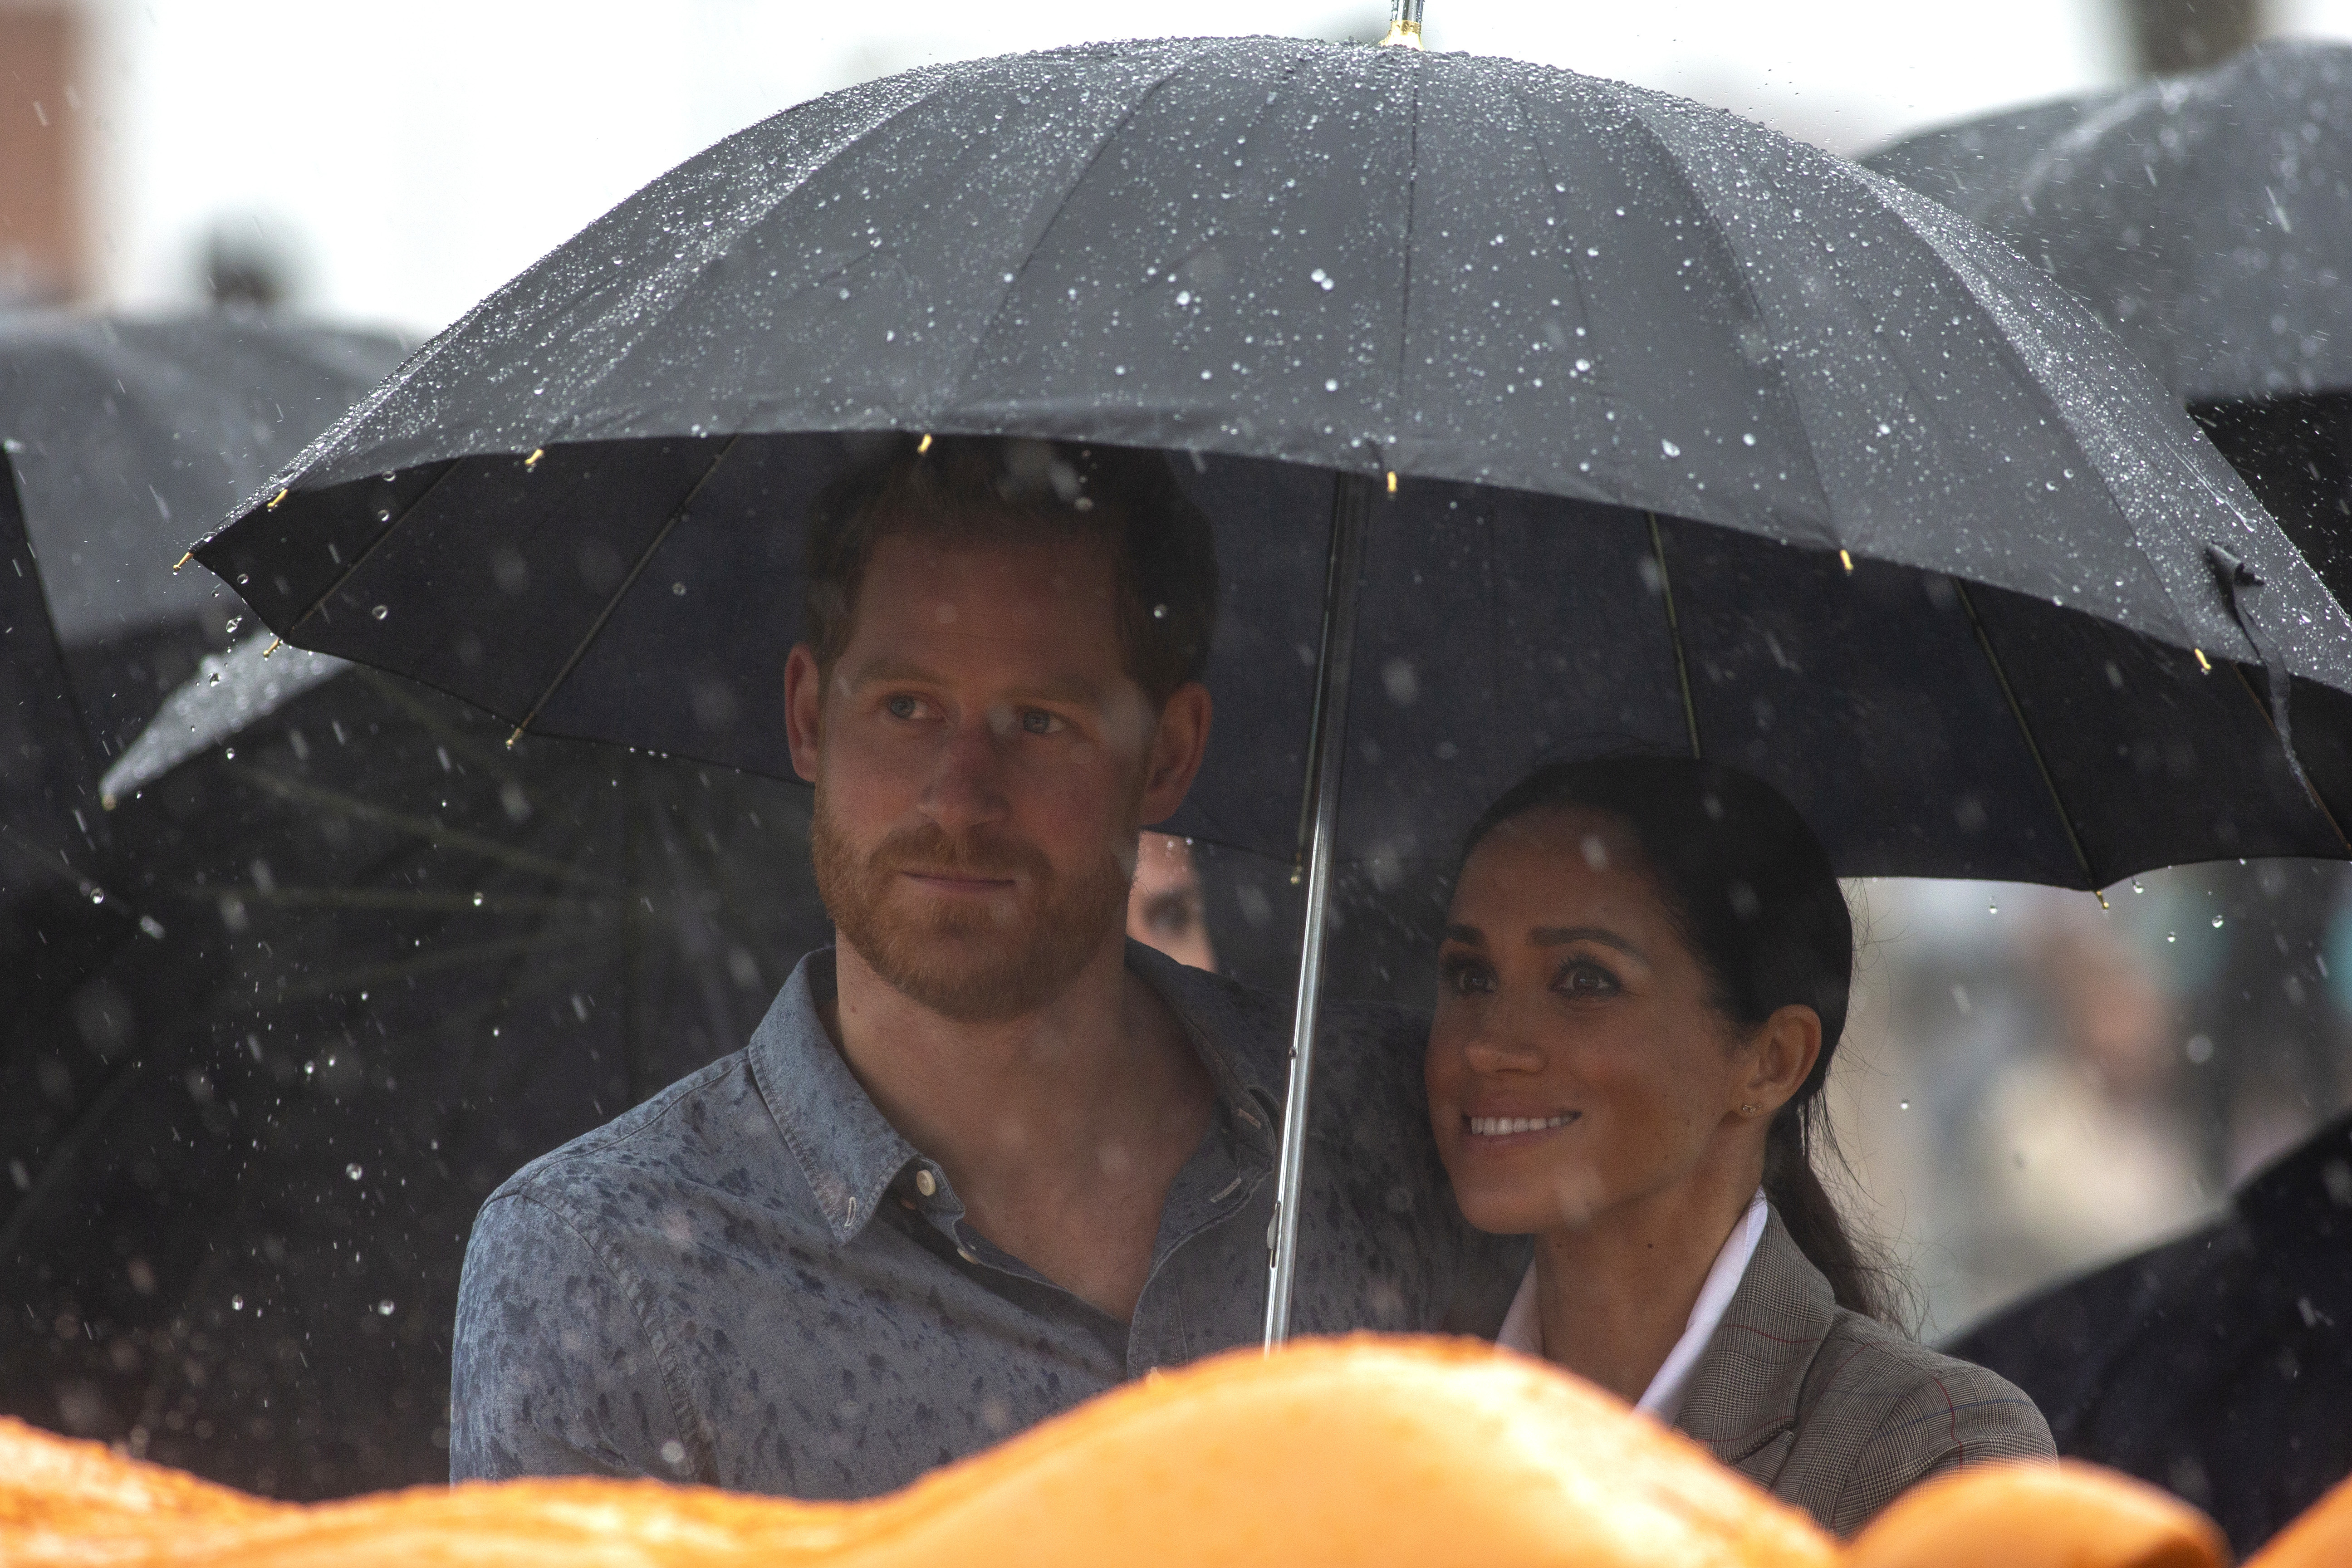 Harry and Meghan bring rain to drought-stricken Outback town during Australia trip